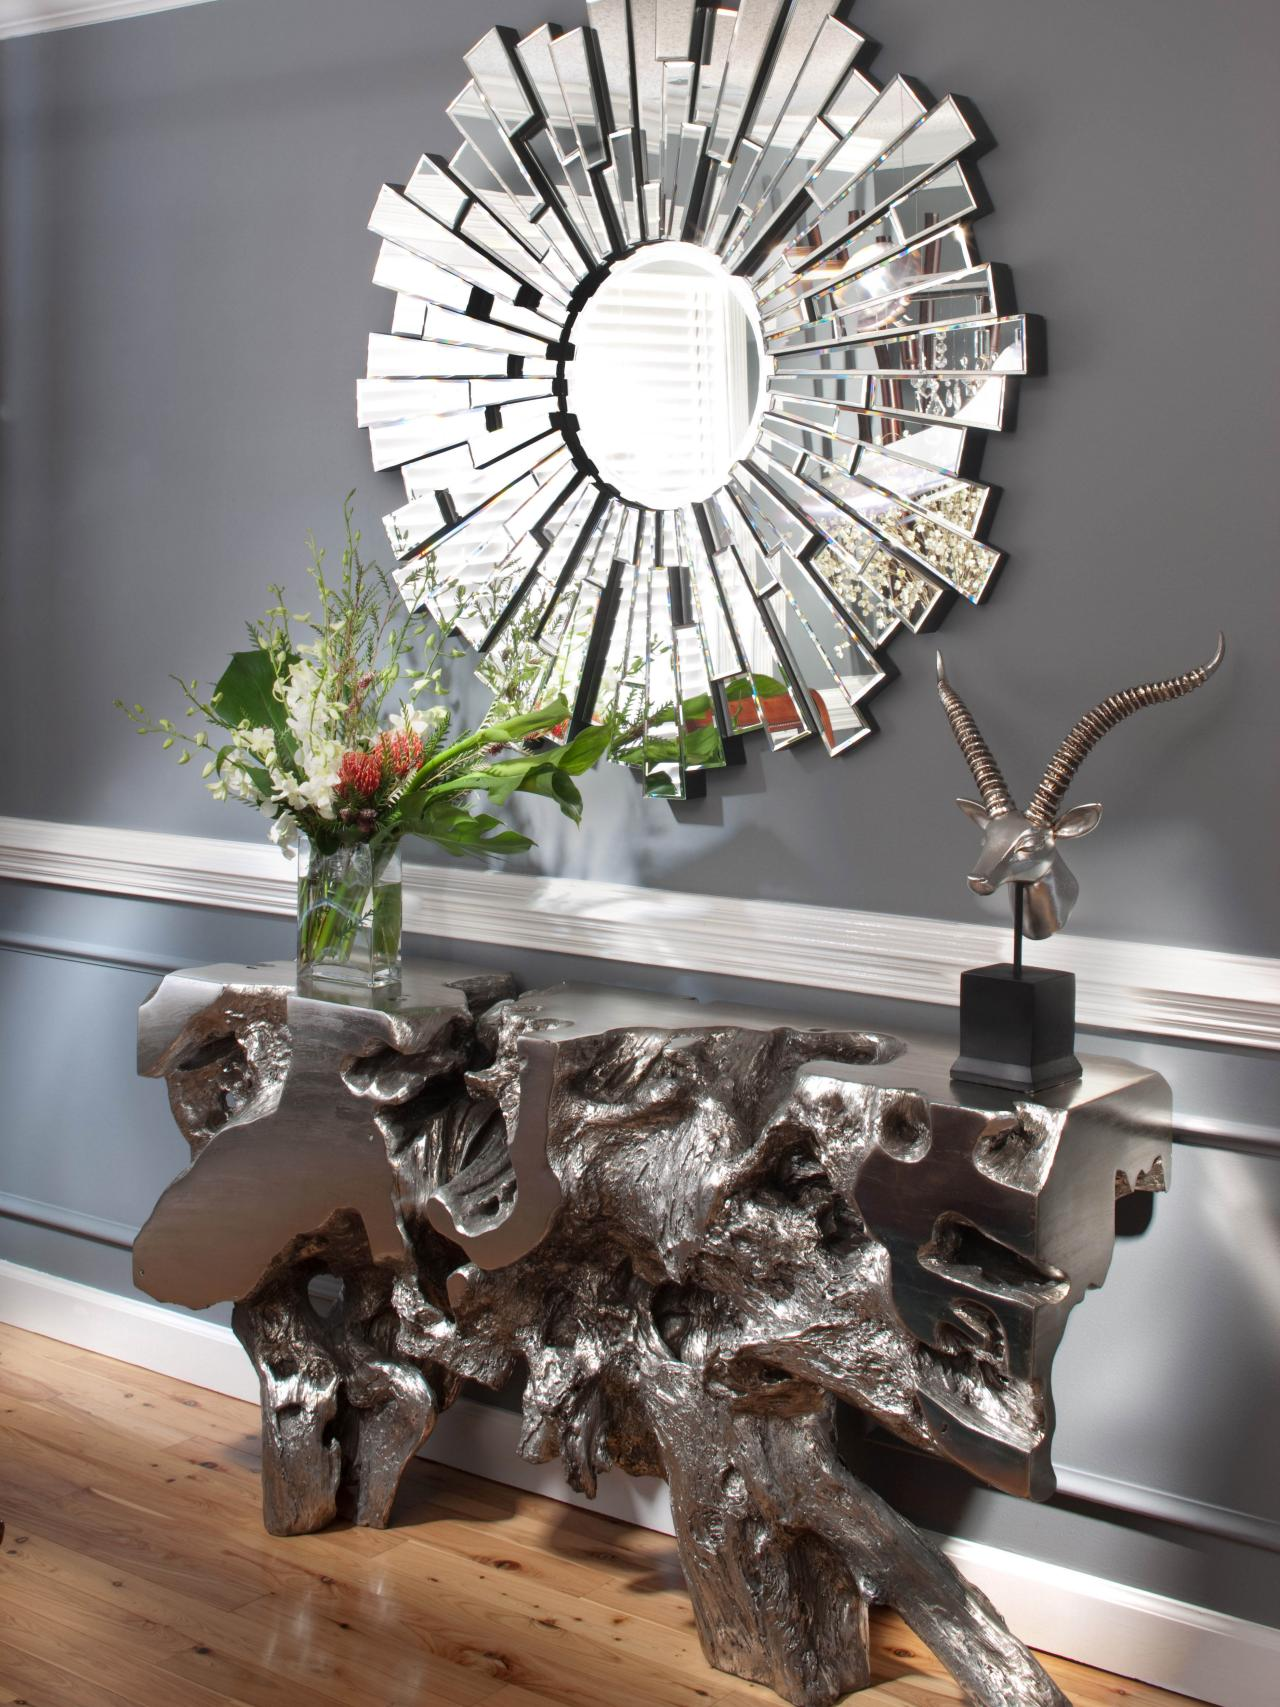 Mesmerizing Sunburst Mirrors at The Wall: Enchanting Sunburst Mirrors With Rustic Table And Night Lap Combined Plus Luxury Wall